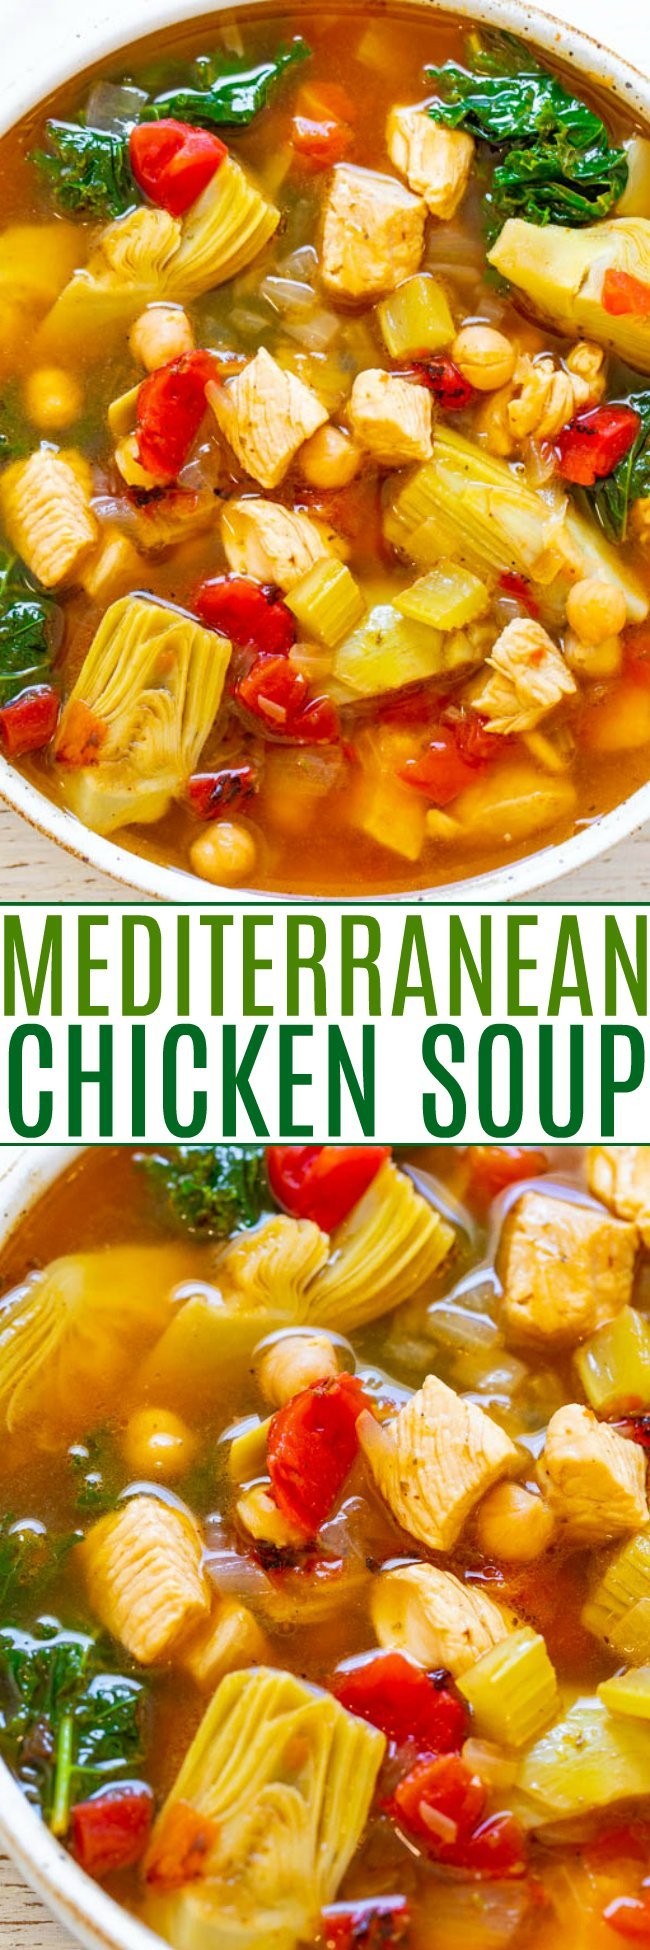 30-Minute Chicken and Vegetable Mediterranean Soup — An EASY soup that's both HEALTHY and HEARTY!! Loaded with tender chicken, vegetables, garbanzo beans, and more! Ready so fast and it's perfect for busy chilly winter weeknights!!